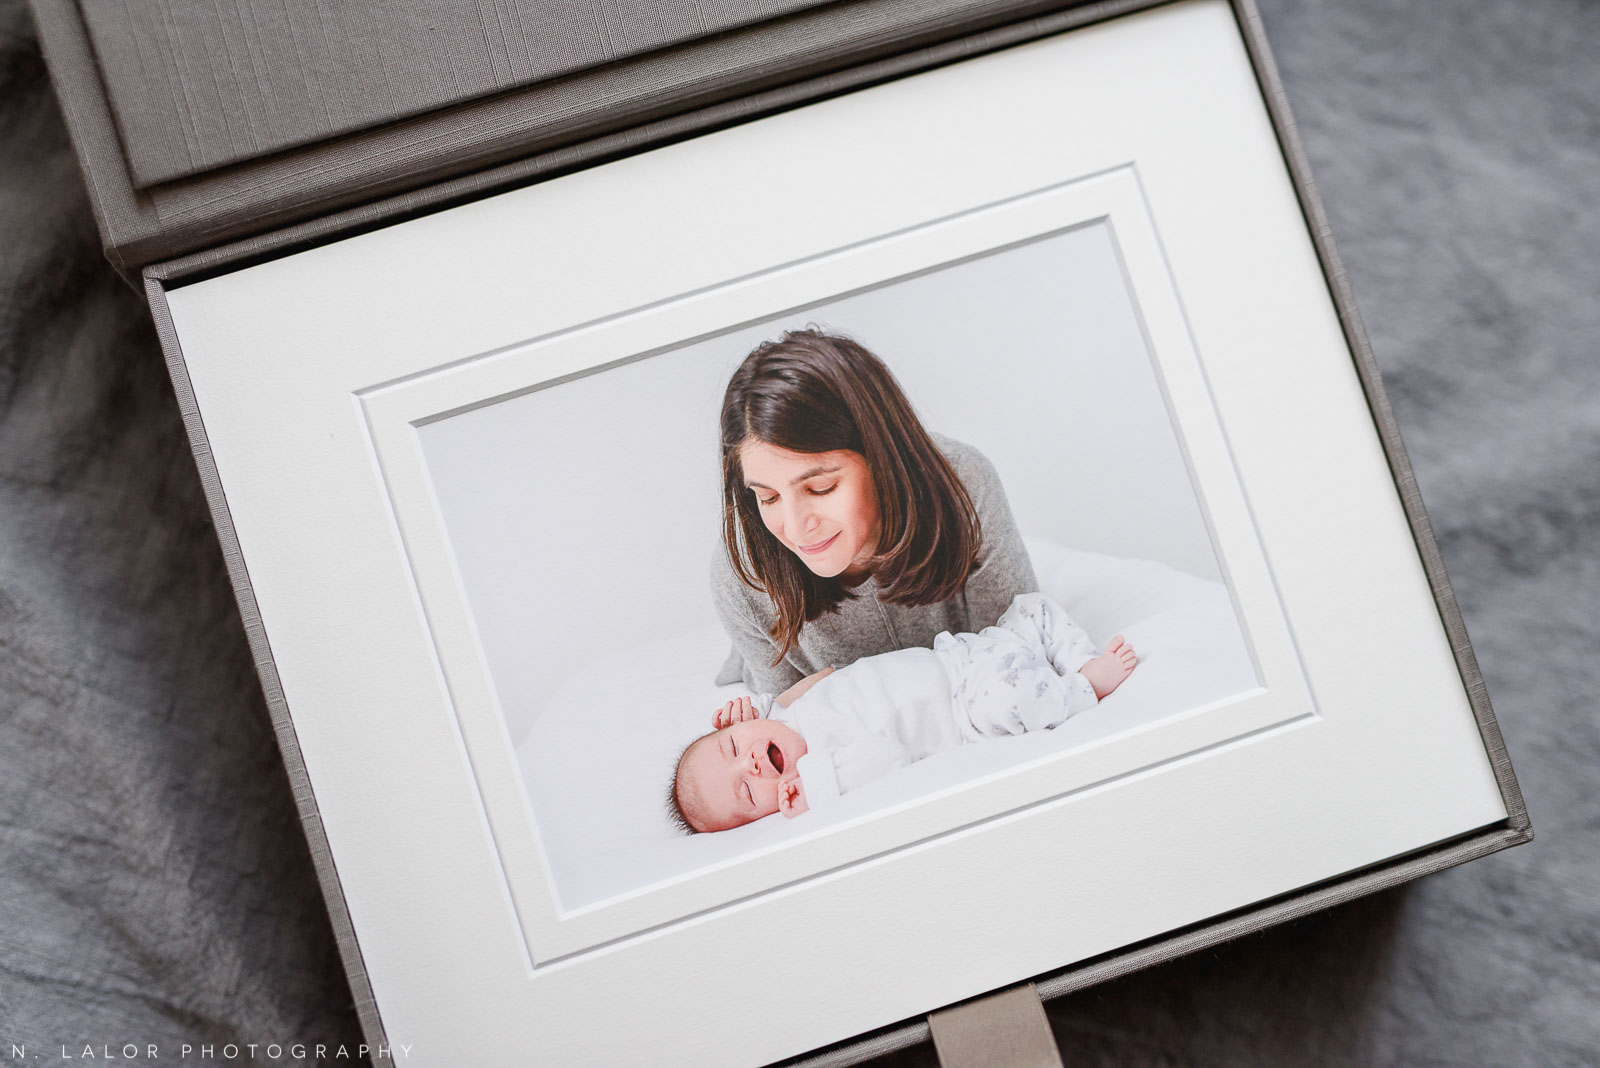 Mom and her newborn baby. Studio portrait by N. Lalor Photography in Greenwich, Connecticut.